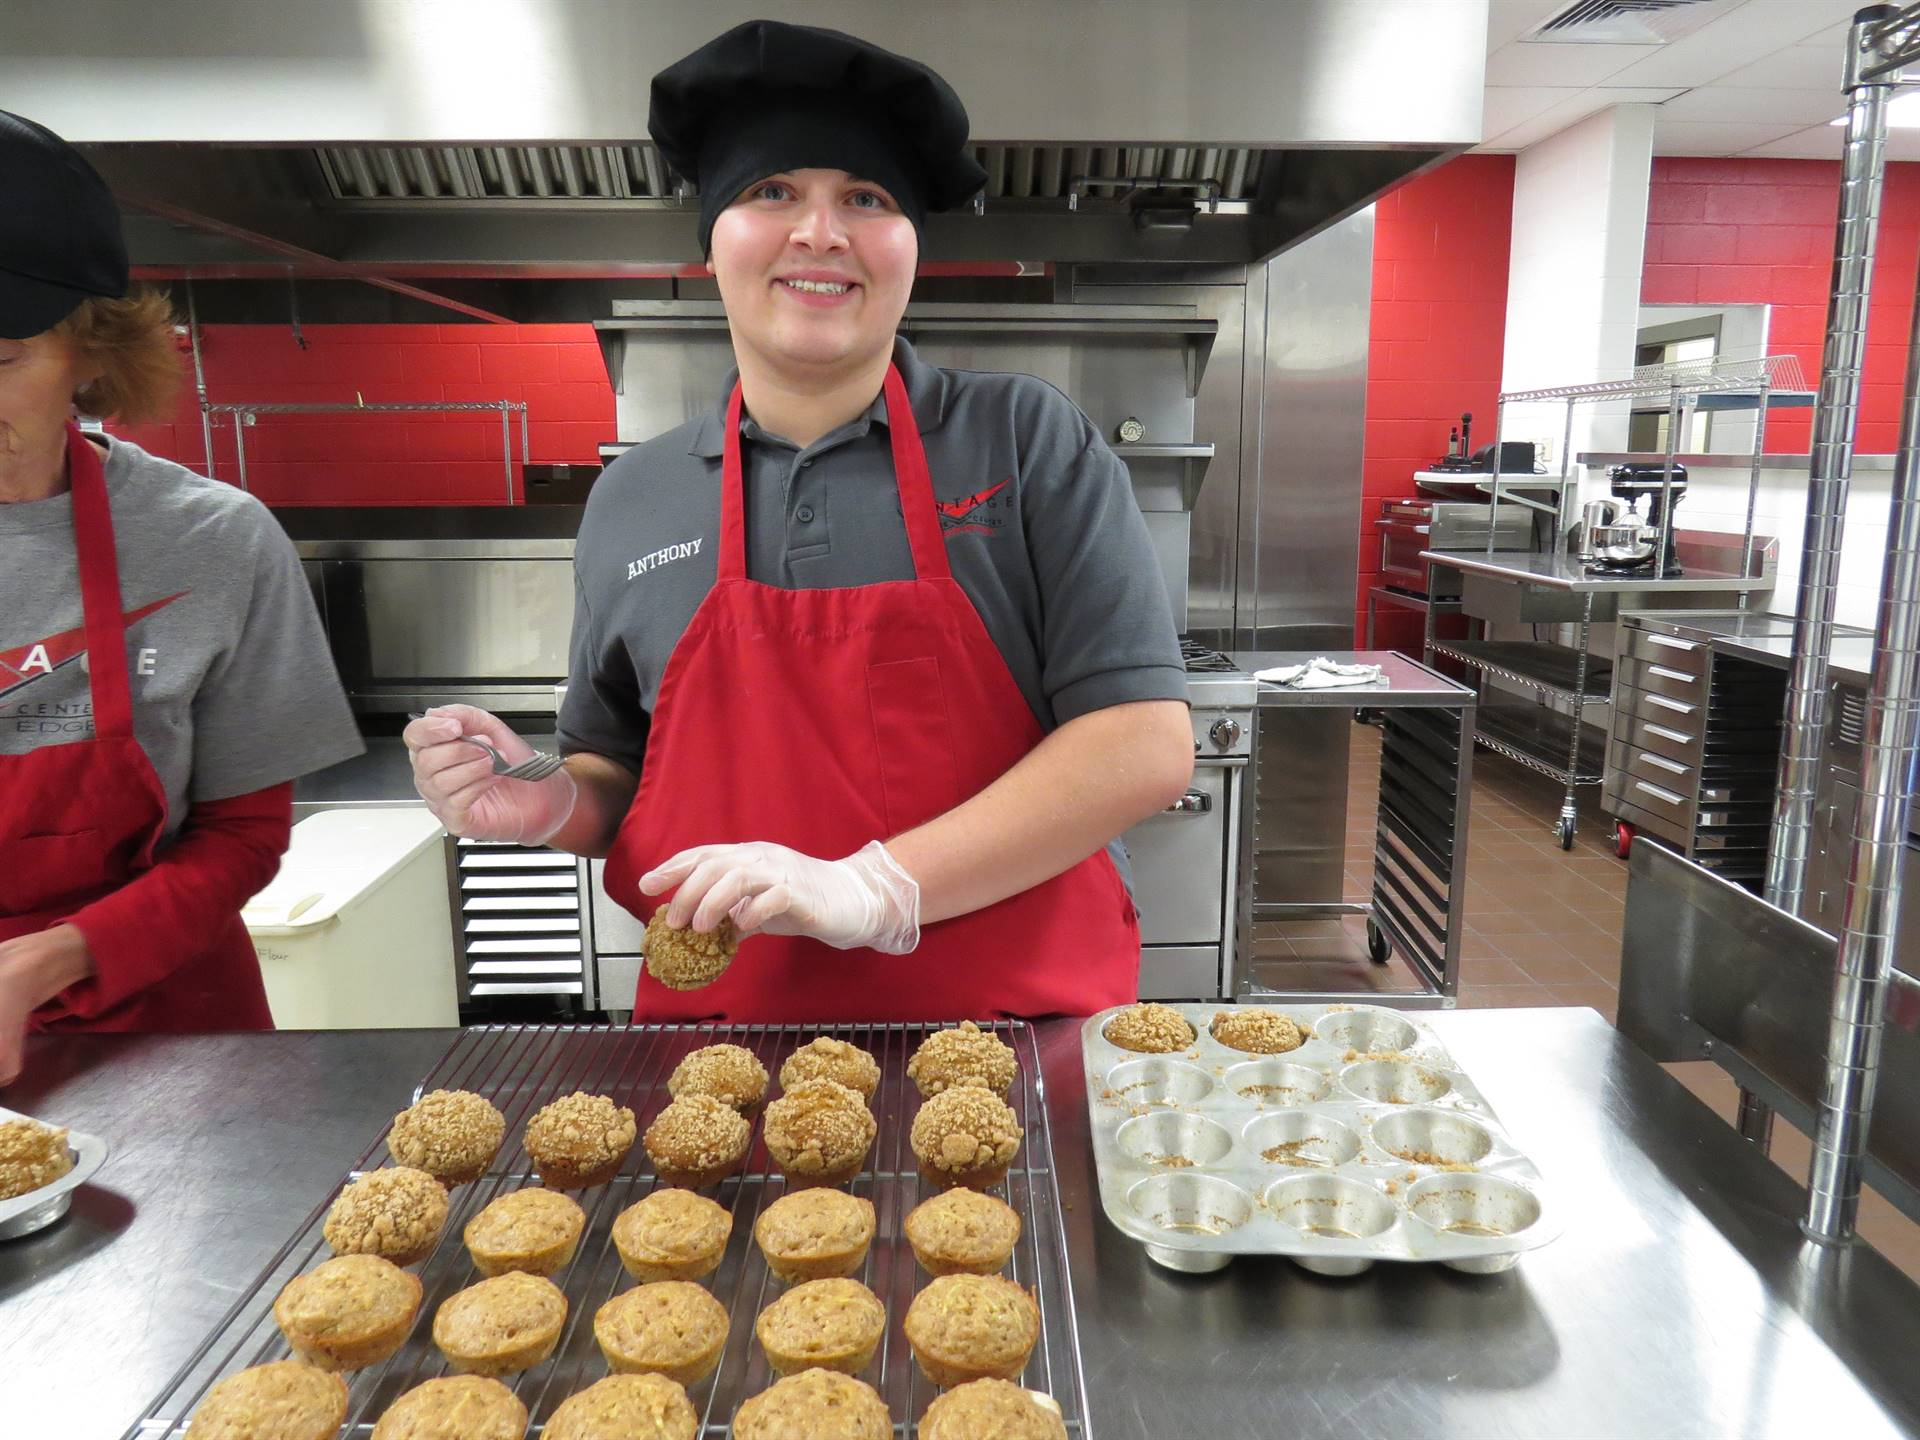 Culinary Arts student prepares food for the restaurant.